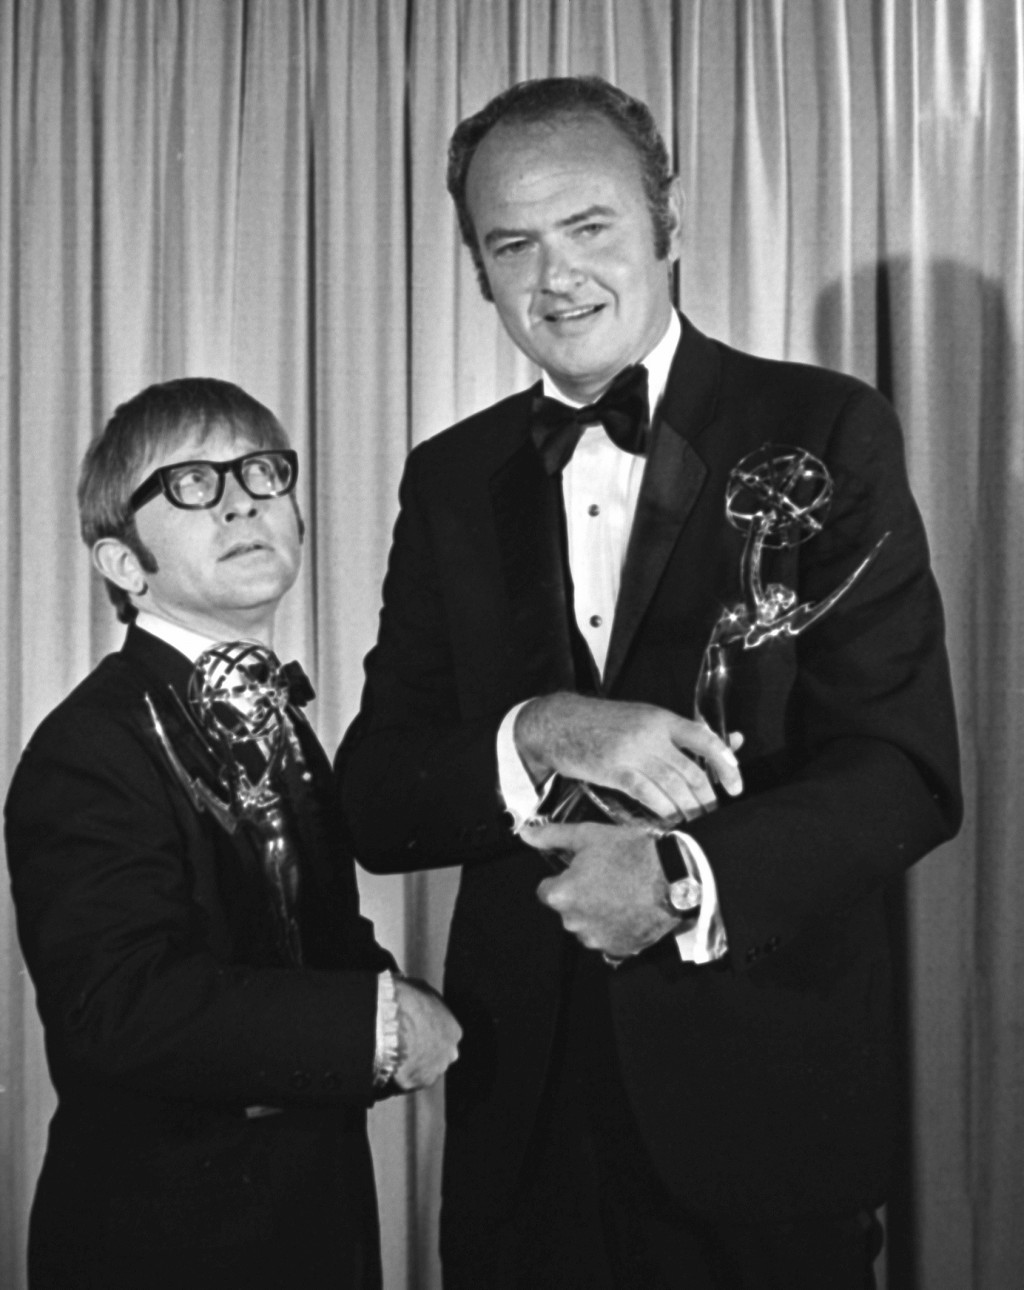 """Harvey Korman, right, of """"The Carol Burnett Show,"""" and Arte Johnson, of """"Rowan and Martin's Laugh-In,"""" hold their Emmys for Outstanding Individual Ach..."""